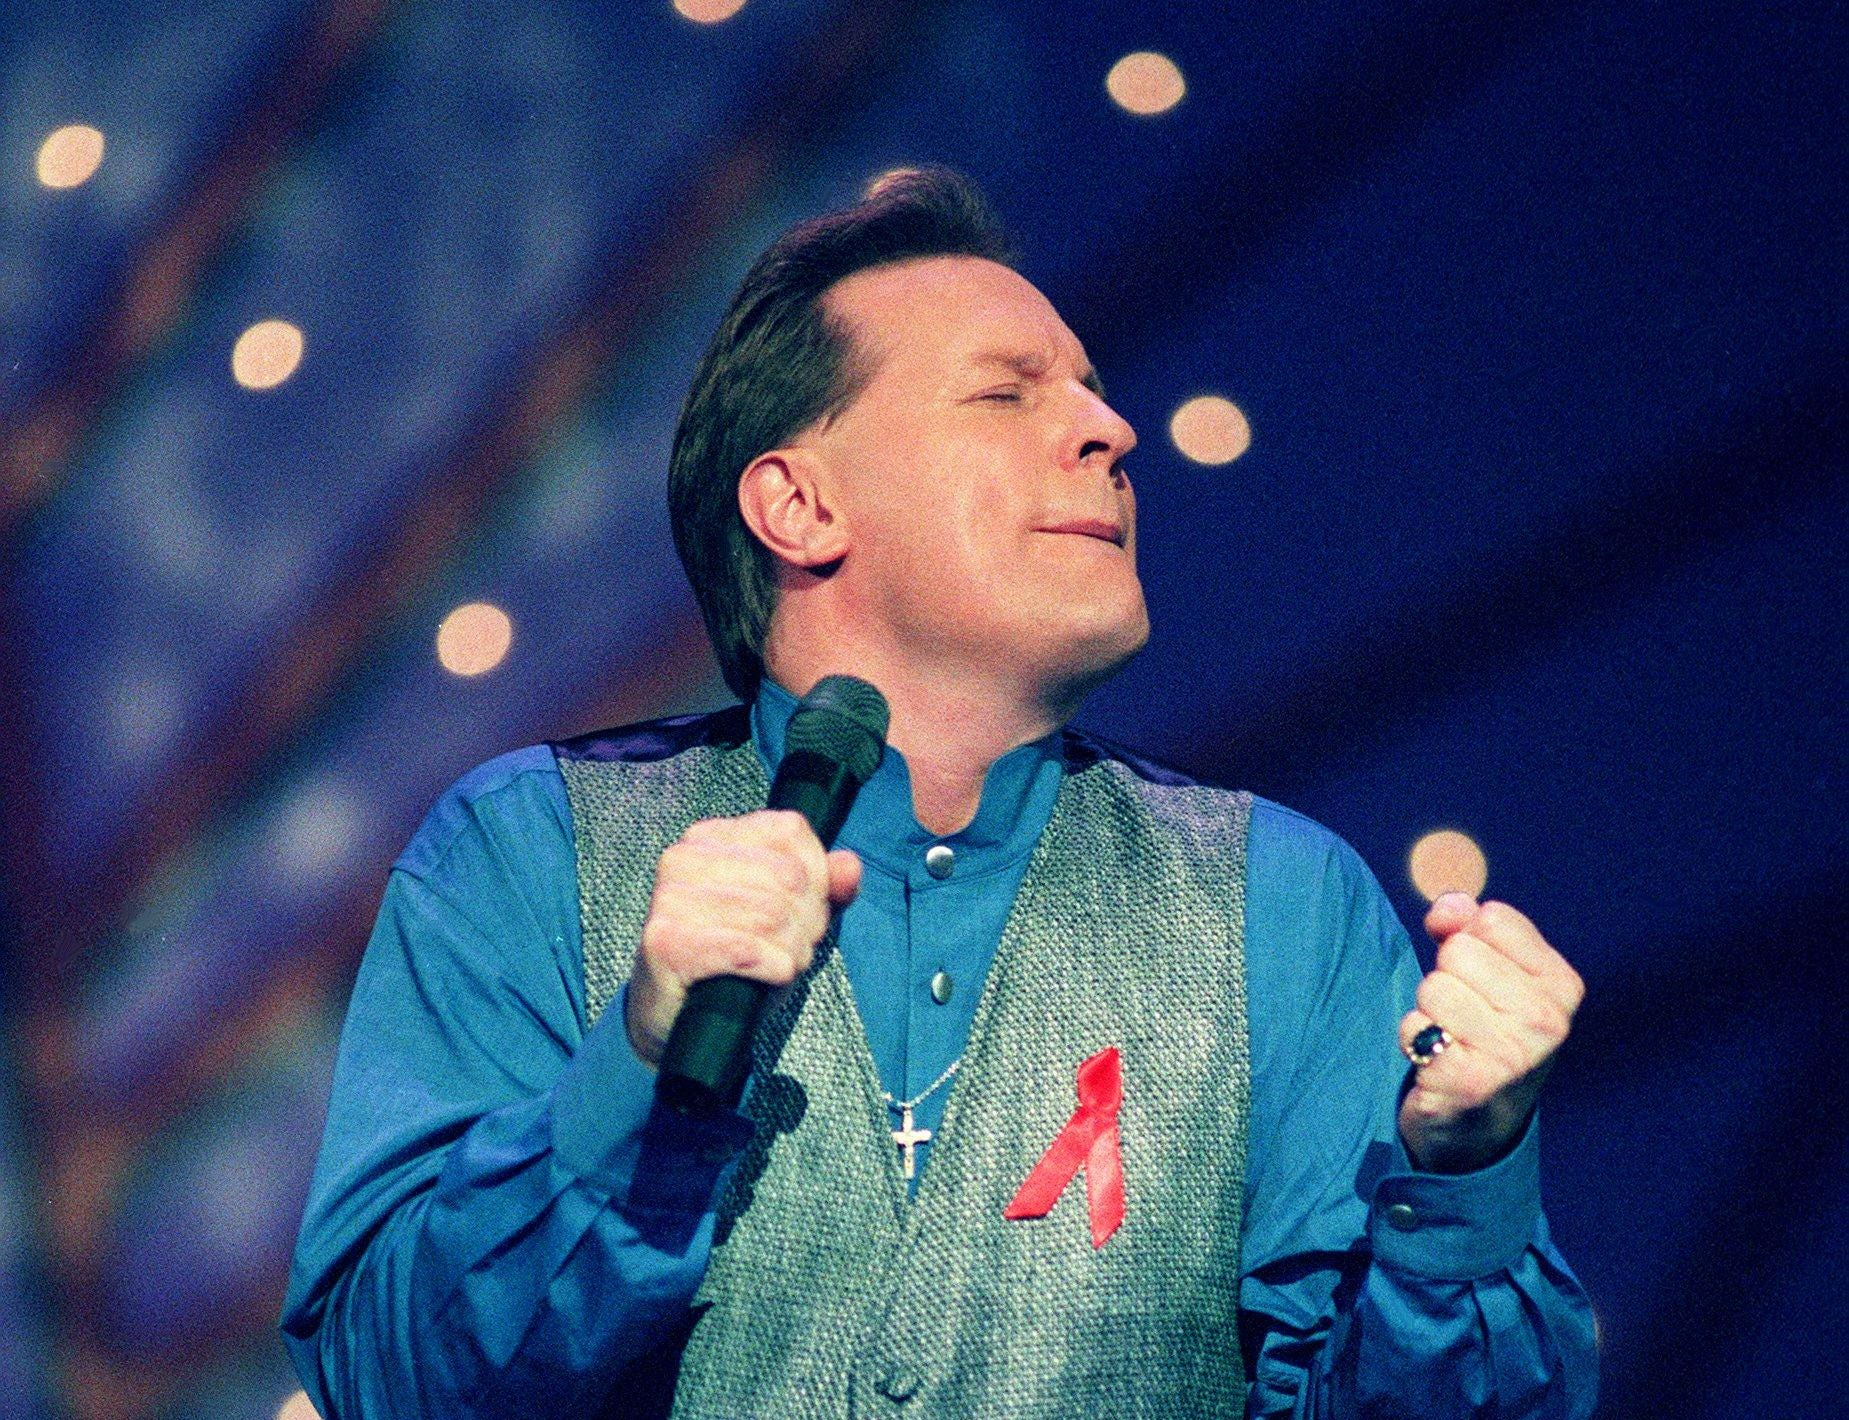 Collin Raye performs during the 30th annual CMA Awards show at the Opry House on Oct. 2, 1996.